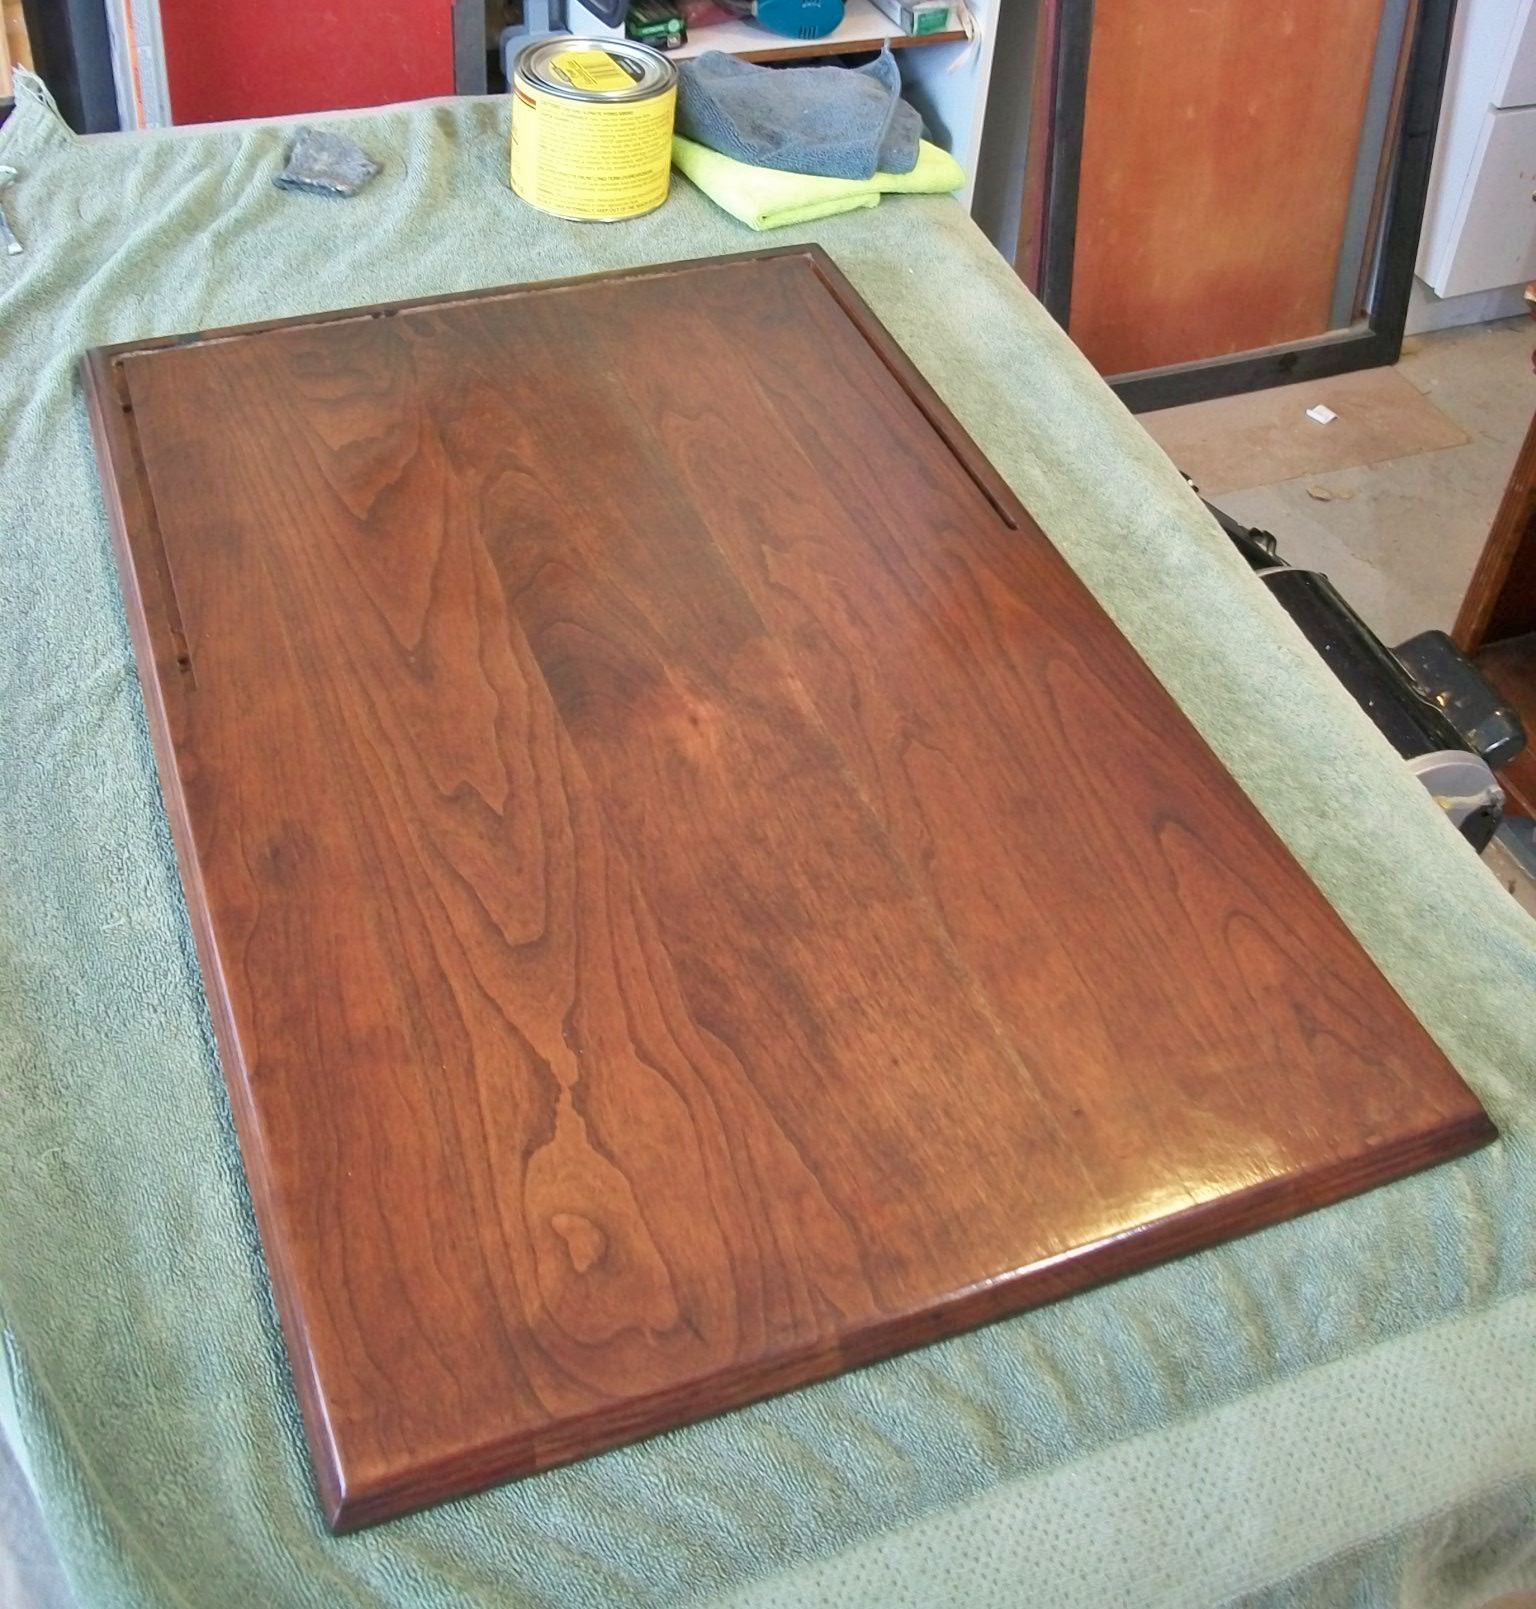 With The Last Coat Of Polyurethane Dry I Rubbed On A Coat Of Paste Wax With